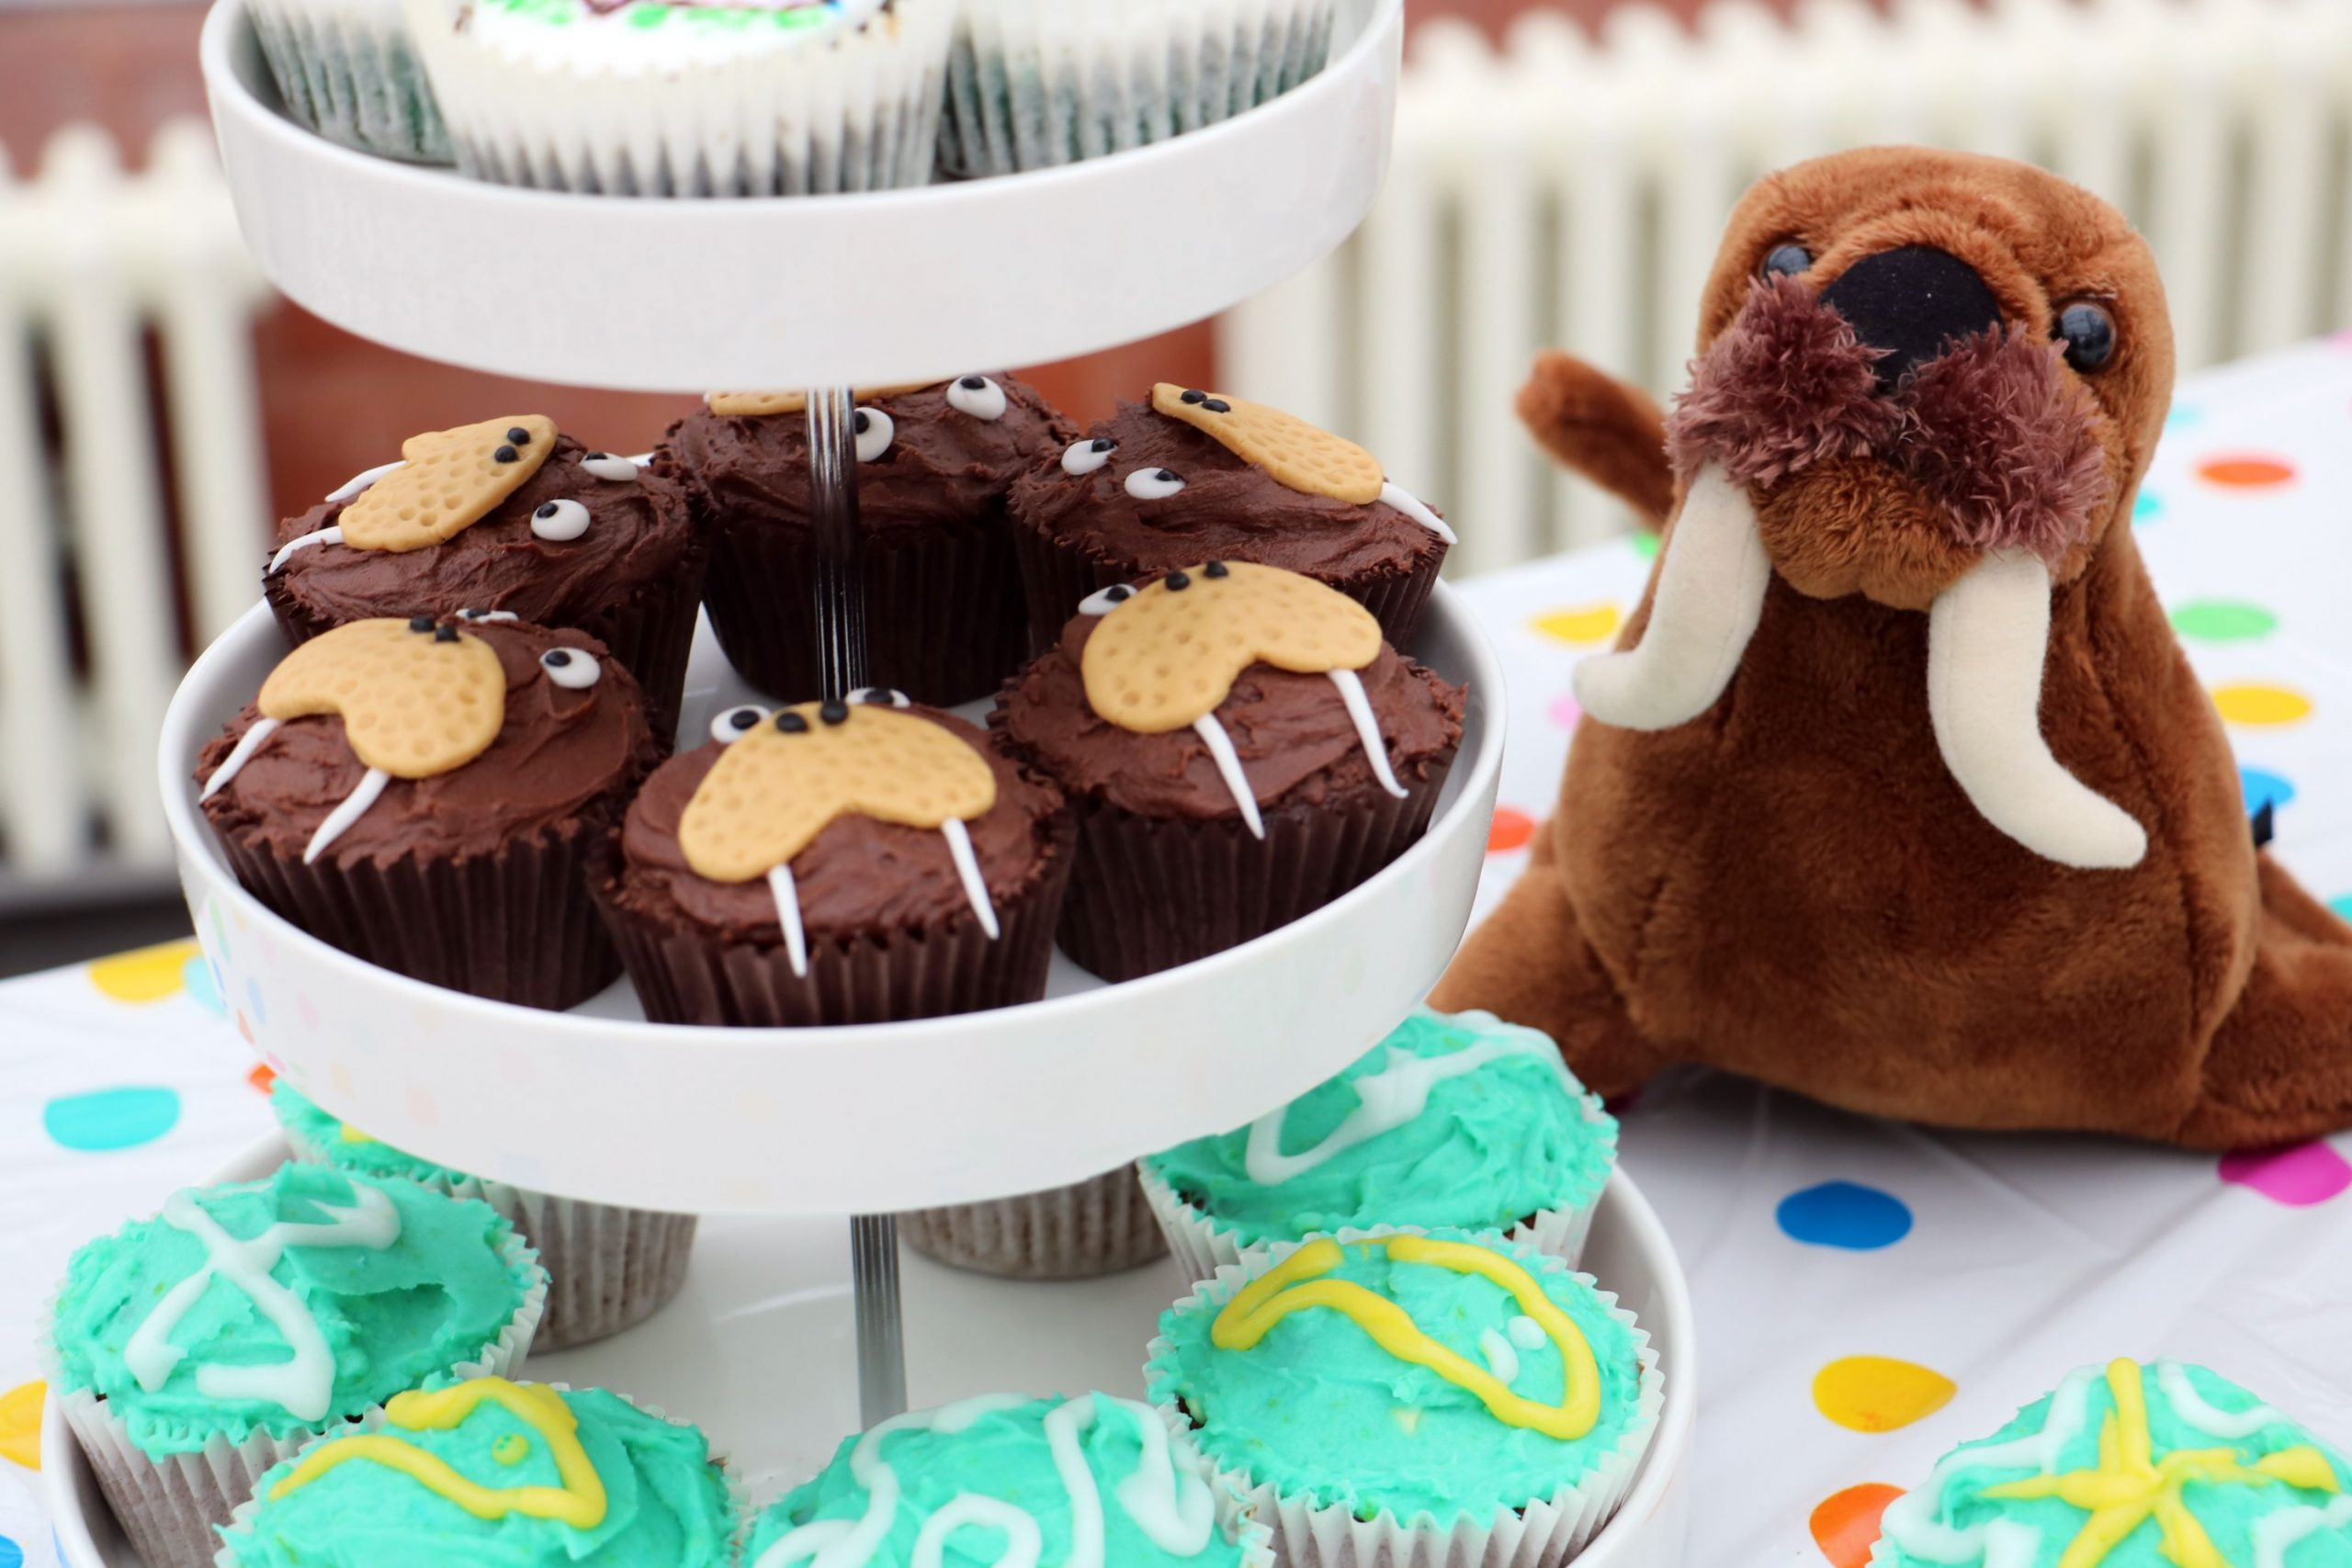 The Horniman Museum and Gardens in London held a virtual Great Walrus Tea Party online